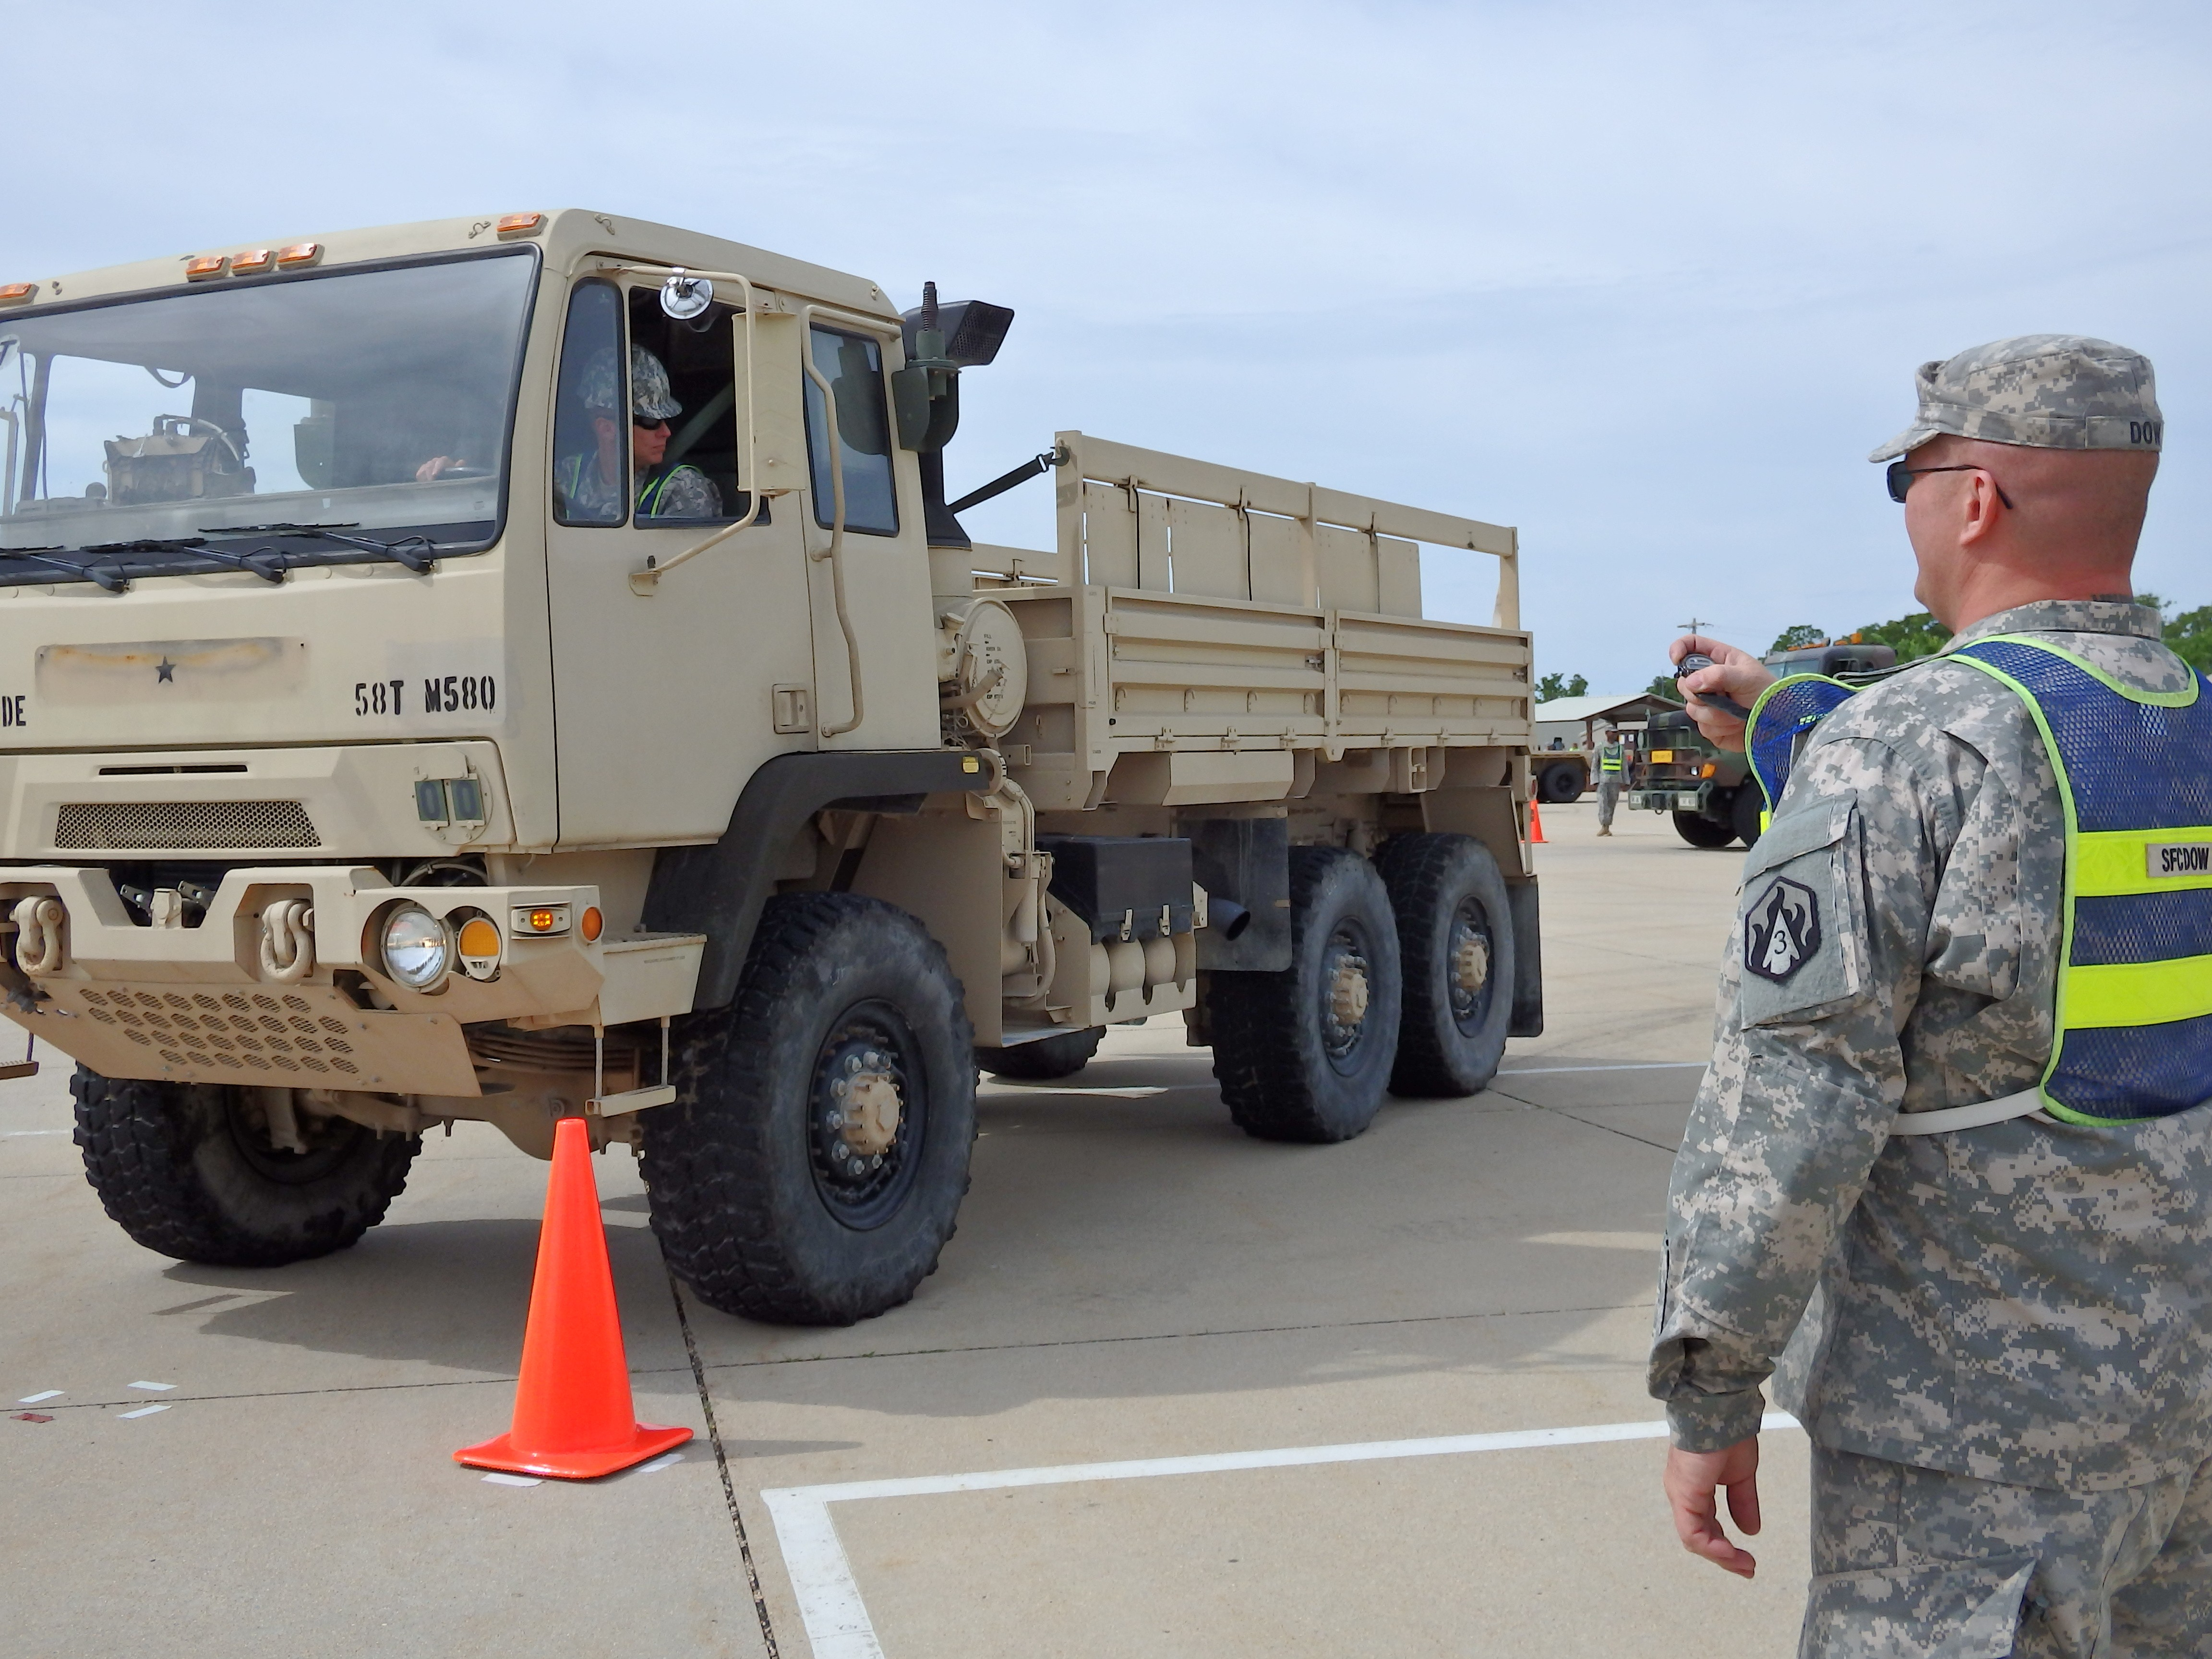 58th Trans Hosts Truck Rodeo Article The United States Army - Us-army-88m